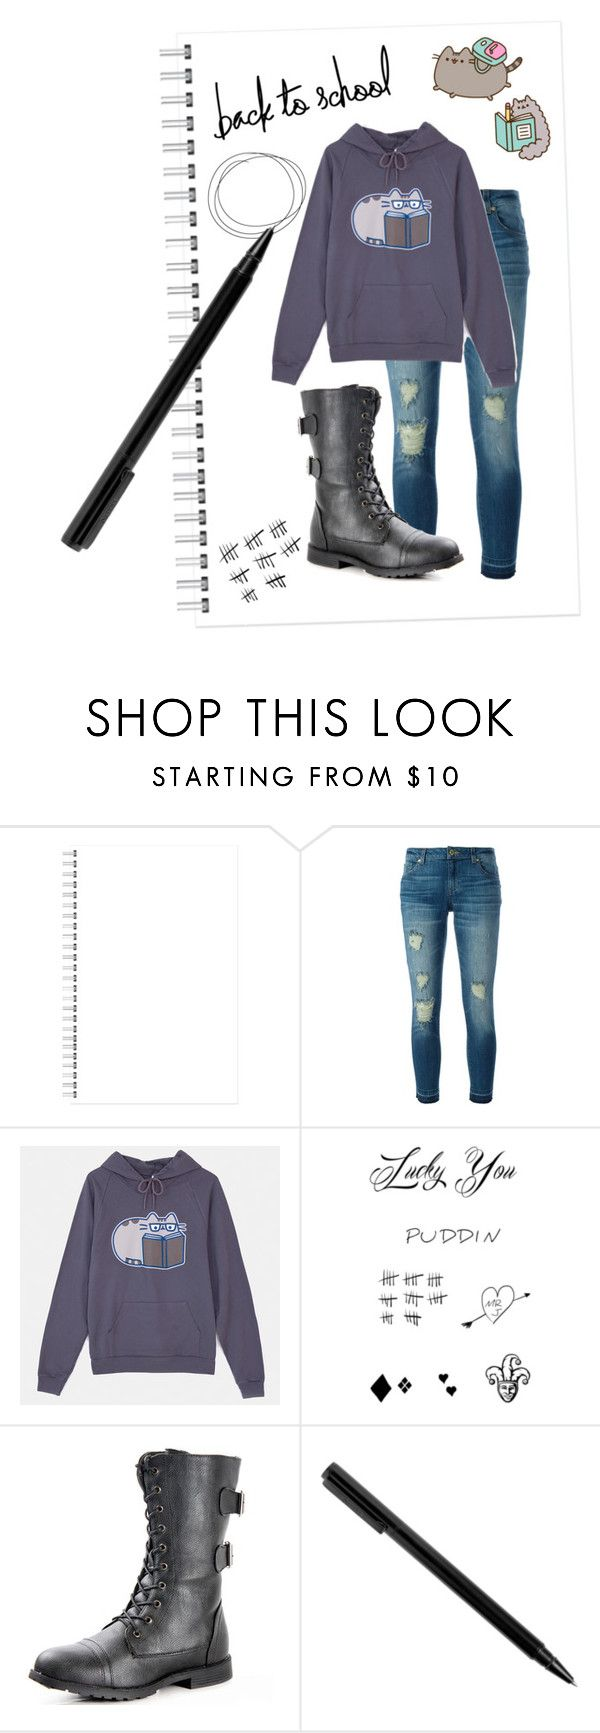 """""""#PVxPusheen"""" by multifandomgal ❤ liked on Polyvore featuring MICHAEL Michael Kors, Pusheen, contestentry and PVxPusheen"""